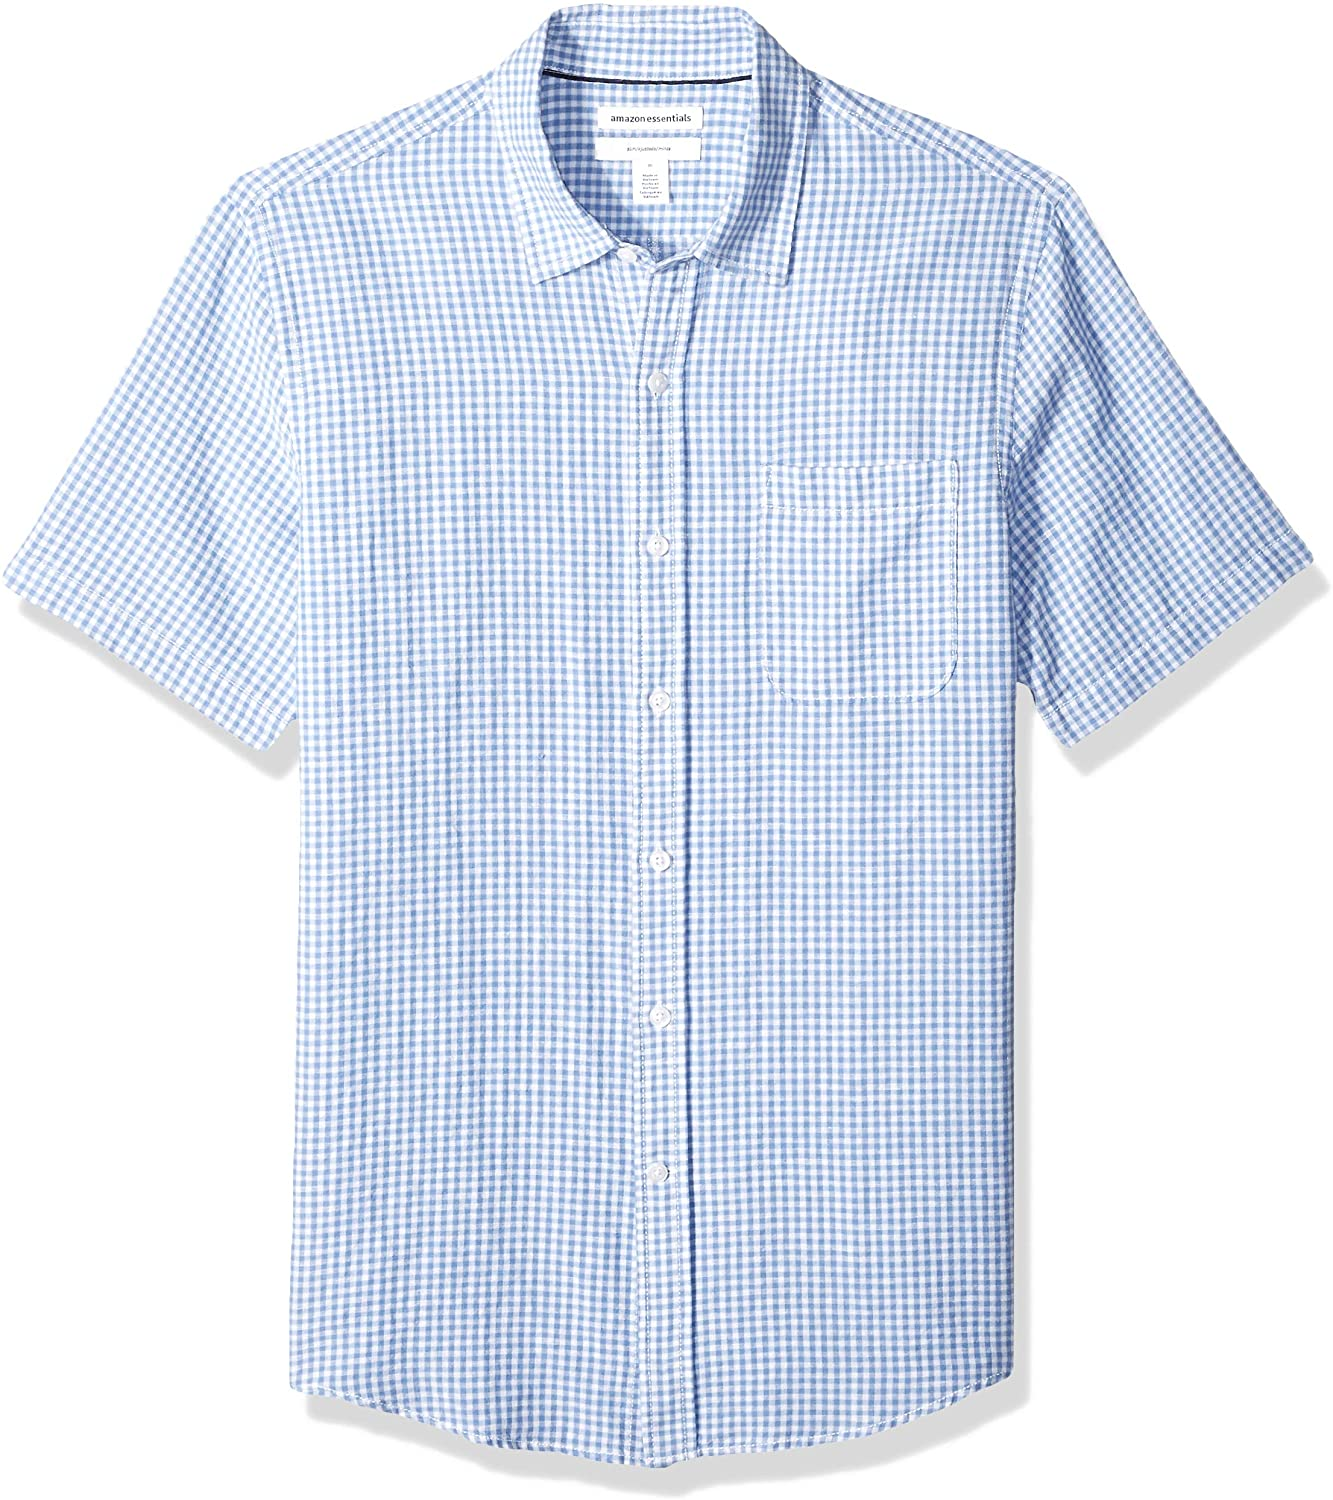 Amazon Essentials Camisa de Algodón de Lino de Manga Corta Ajustada Button-Down-Shirts Hombre